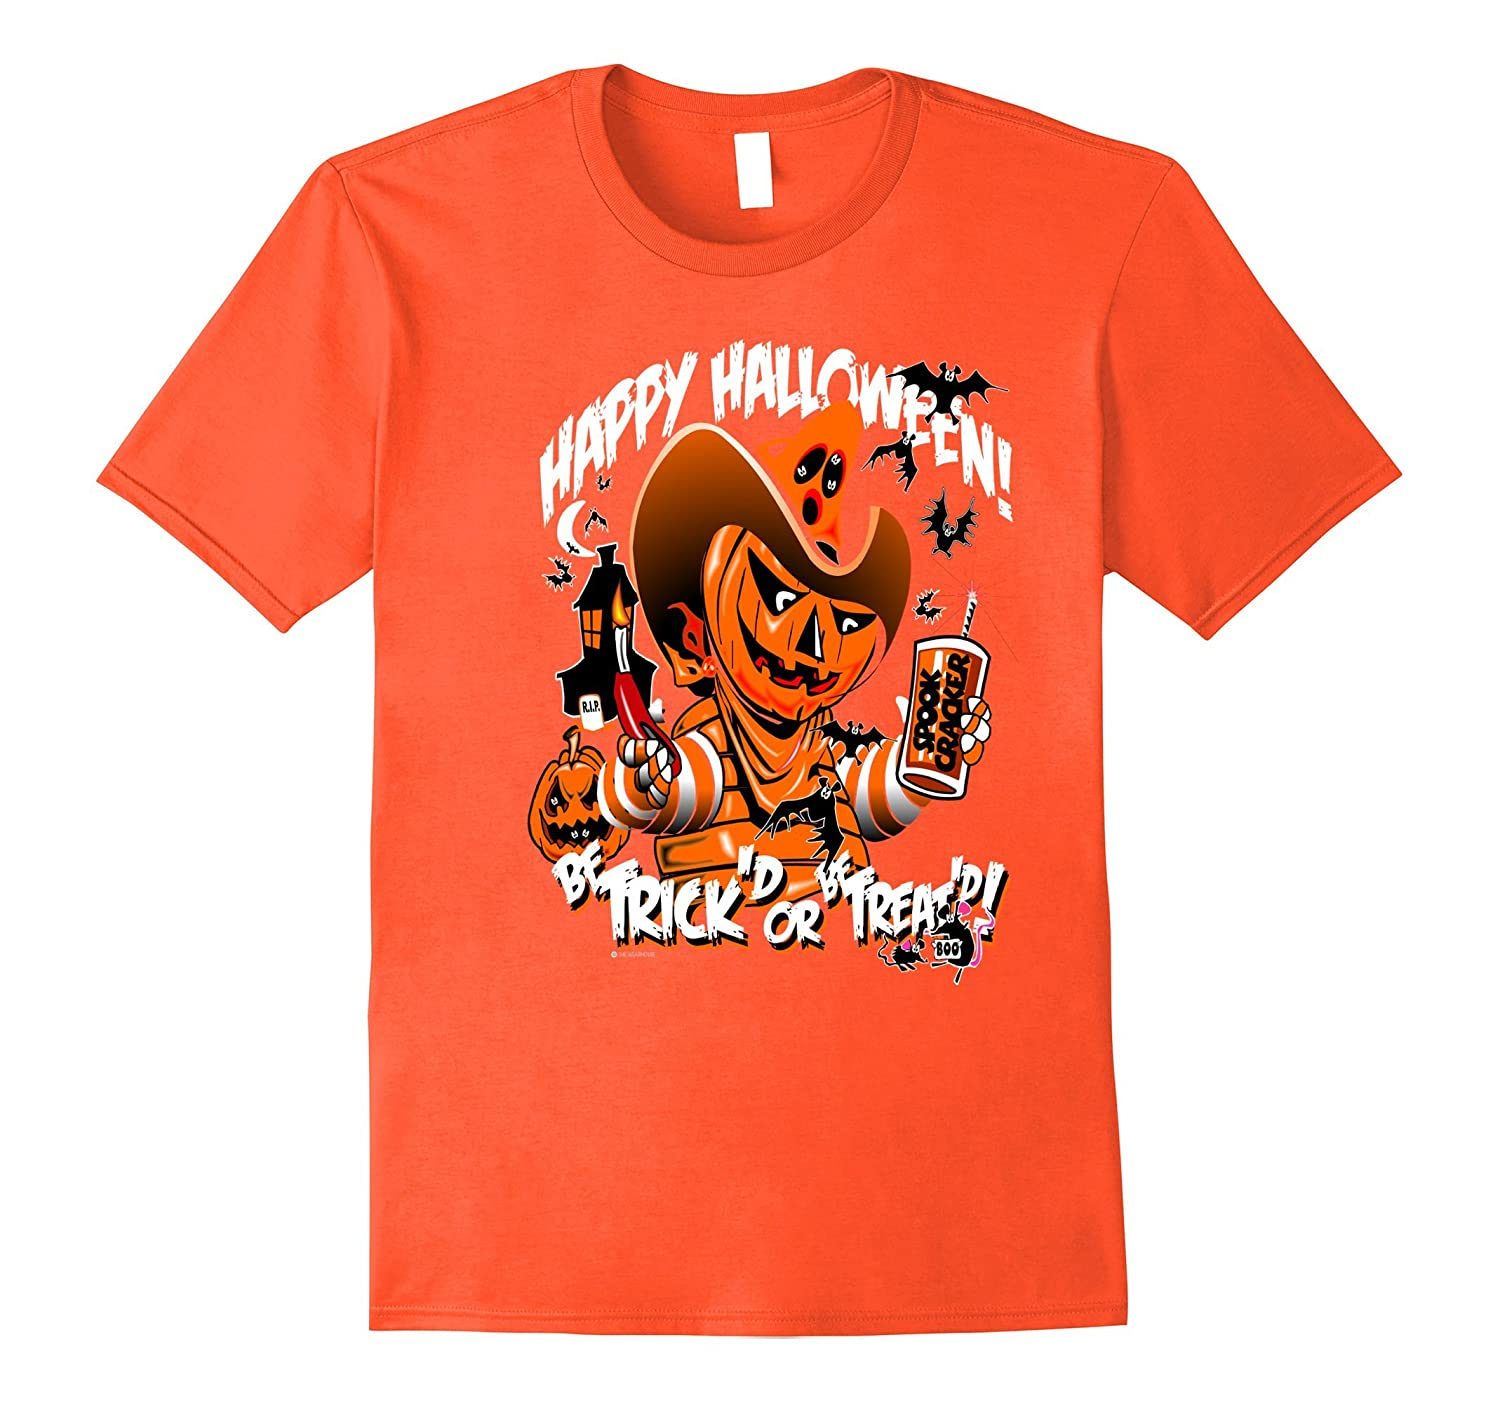 Halloween Pumpkin Head Holiday Spooky Humorous Tee Shirt-T-Shirt